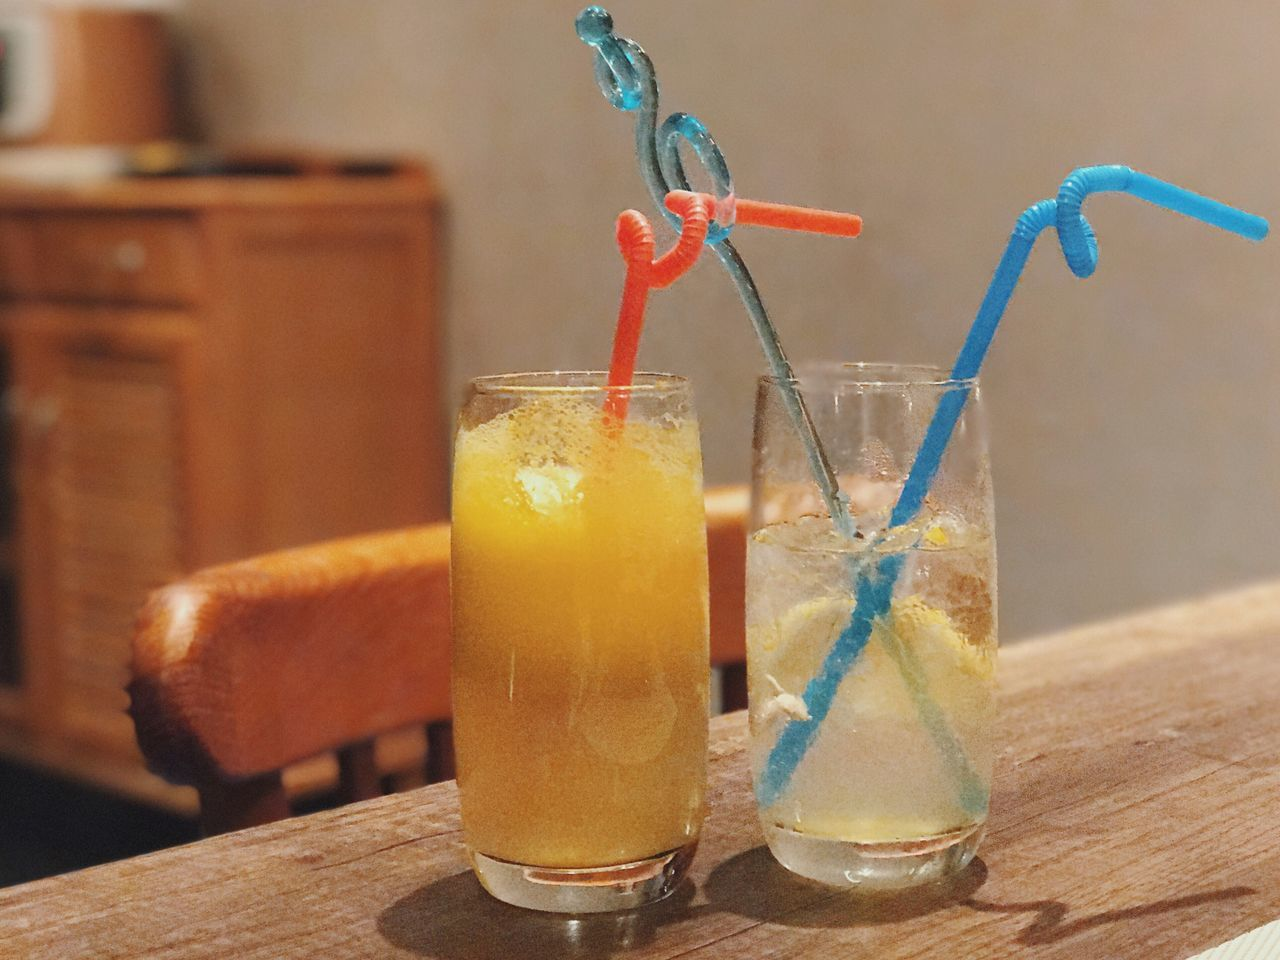 Drink Drinking Drinks Drinking Glass Drinking Straw Refreshment Food And Drink Table Focus On Foreground Freshness Indoors  Close-up Still Life Enjoying Life Relaxing Summer Summertime